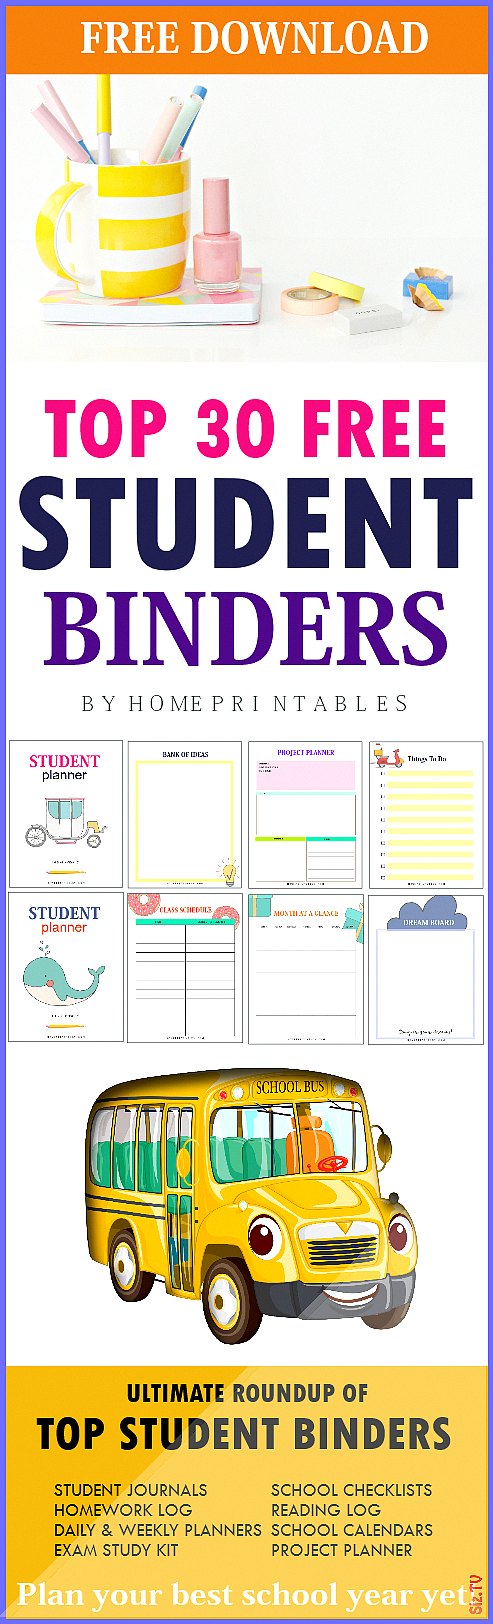 Discover the best free student binder printables available online Yes they re all unbelievably free schoolbinder school planner printables hom  Discover the best free student binder printables available online Yes they re all unbelievably free schoolbinder school planner printables hom  besocial besocial Discover the best free student binder printables available online Yes they re all unbelievably fr #binder #discover #online #planner #printables #school #schoolnotesbinder #schoolbinder #student #teacherplannerfree